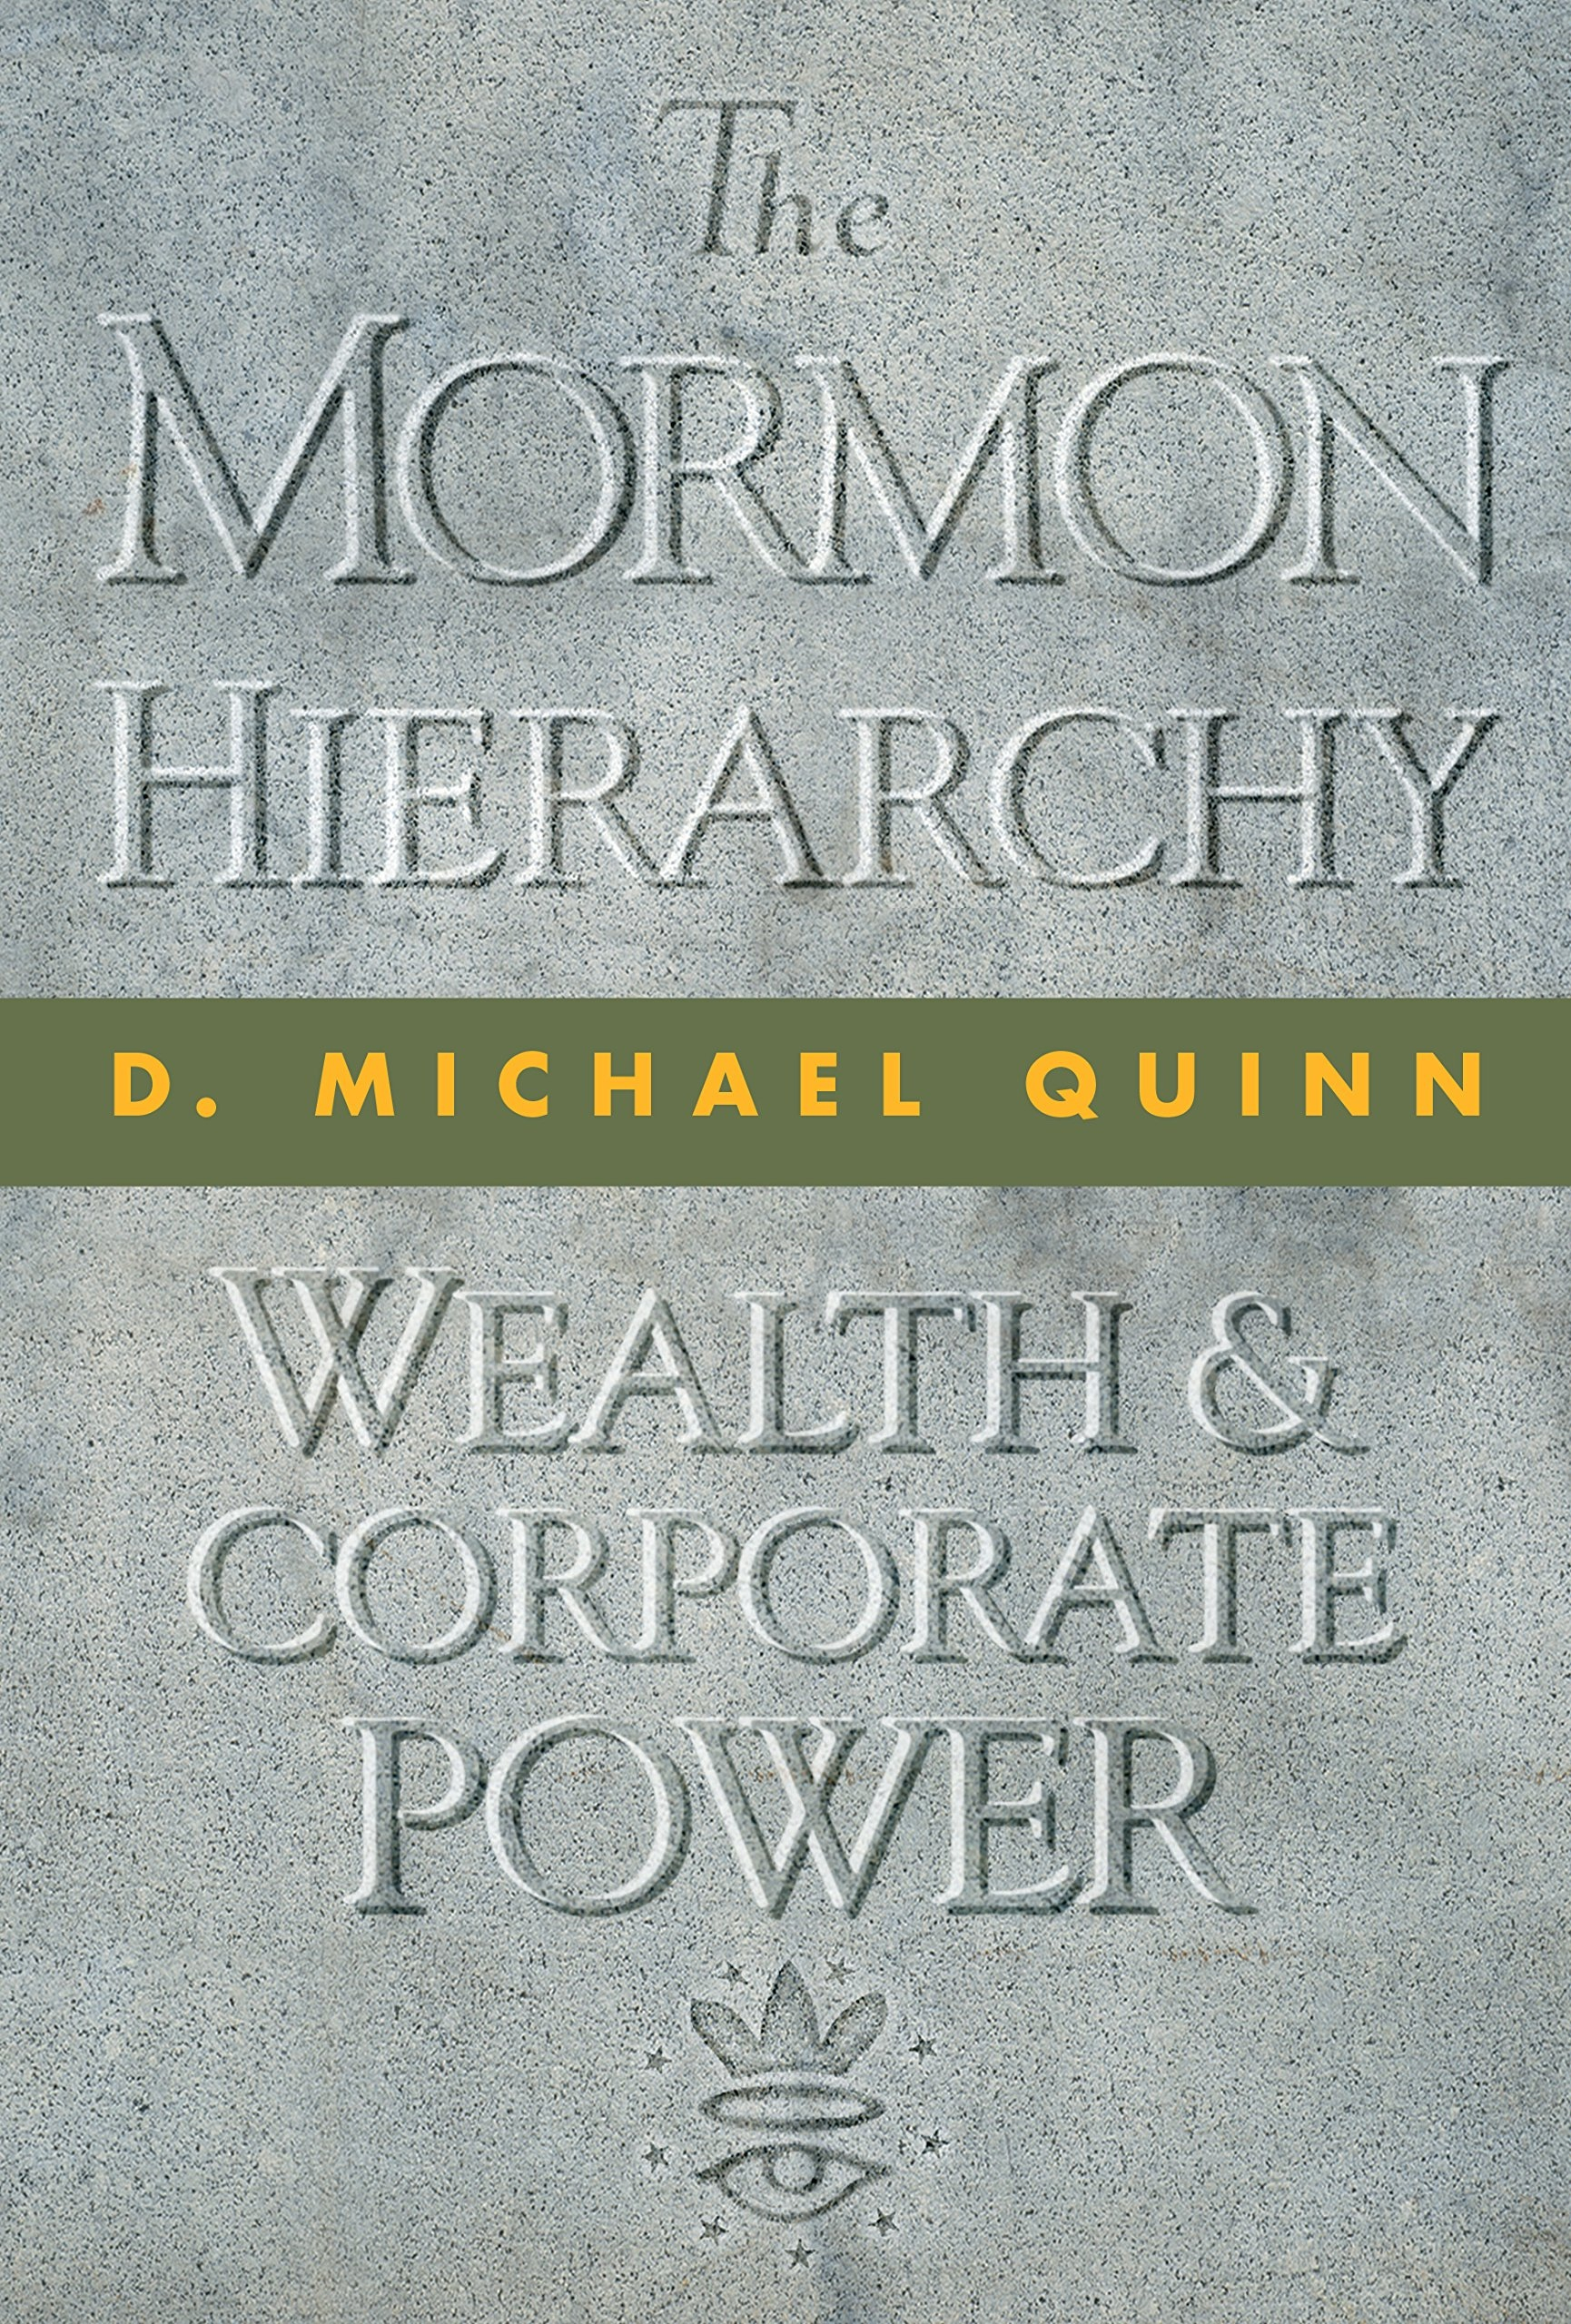 Image for The Mormon Hierarchy;   Wealth and Corporate Power